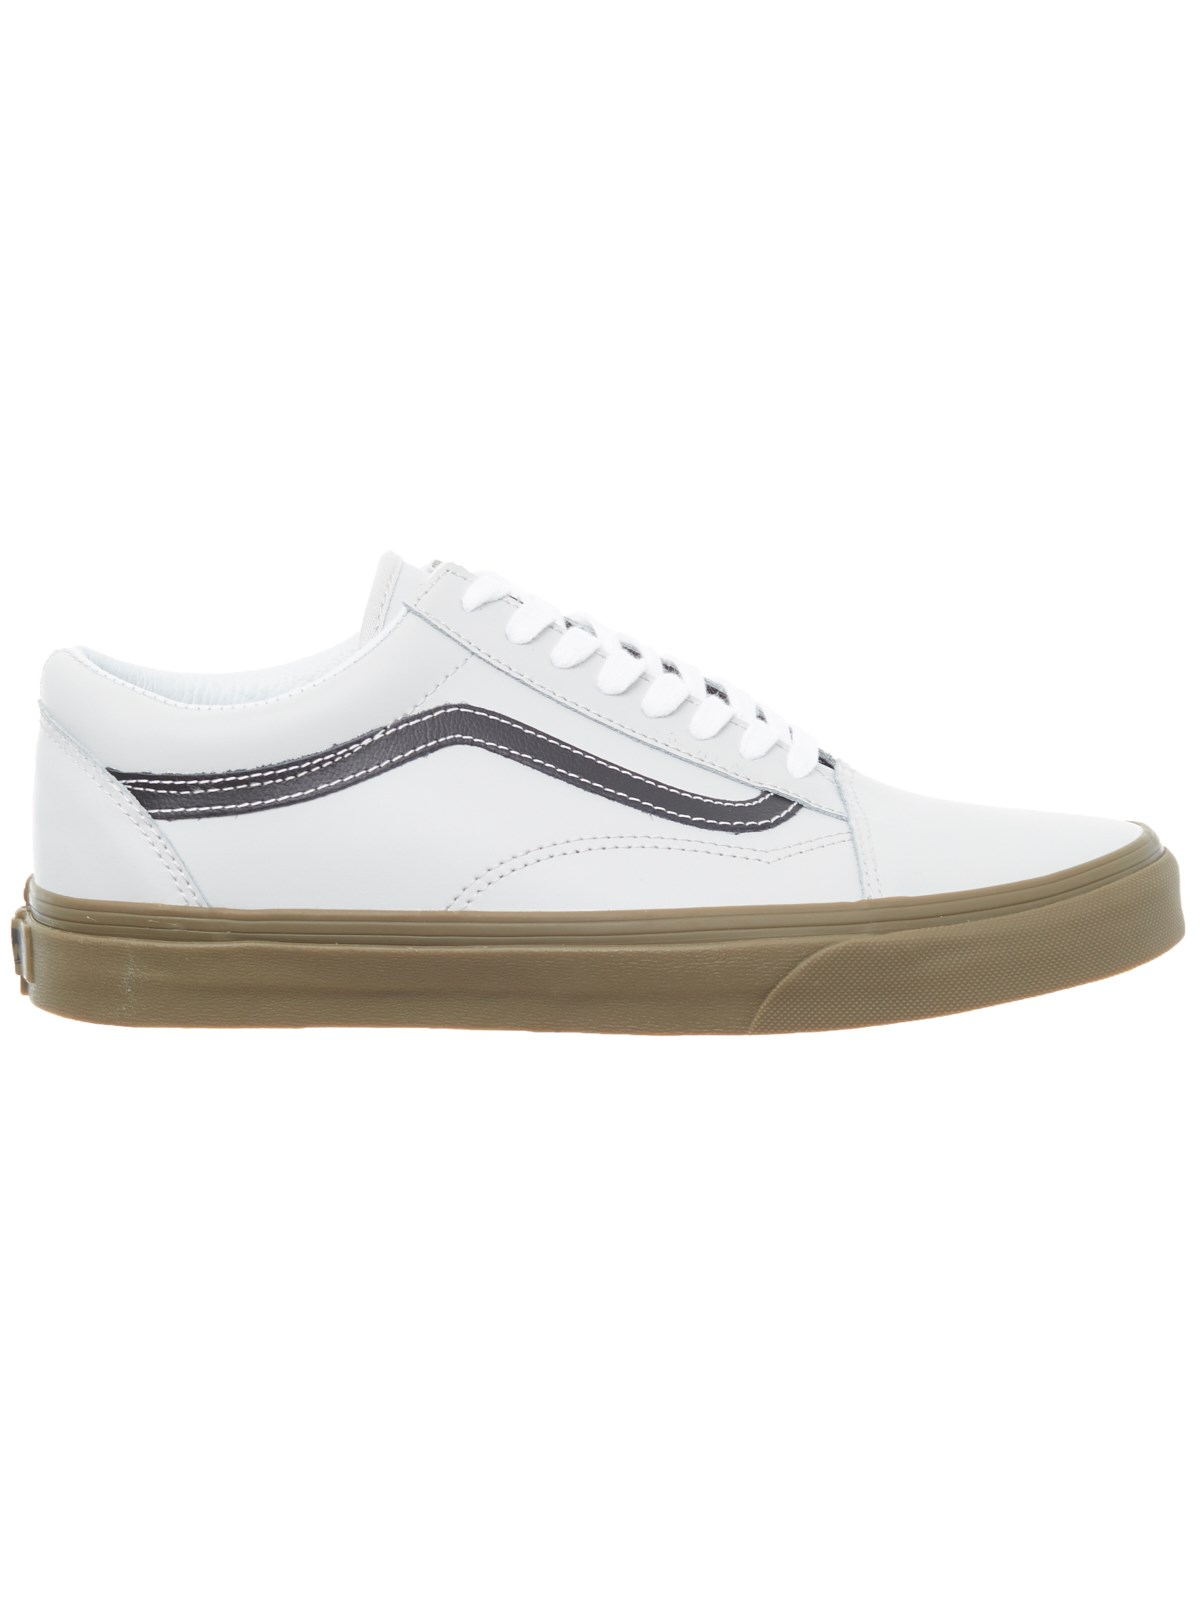 56f93bd1e3db Vans Old Skool - Bleacher Gray Black Gum